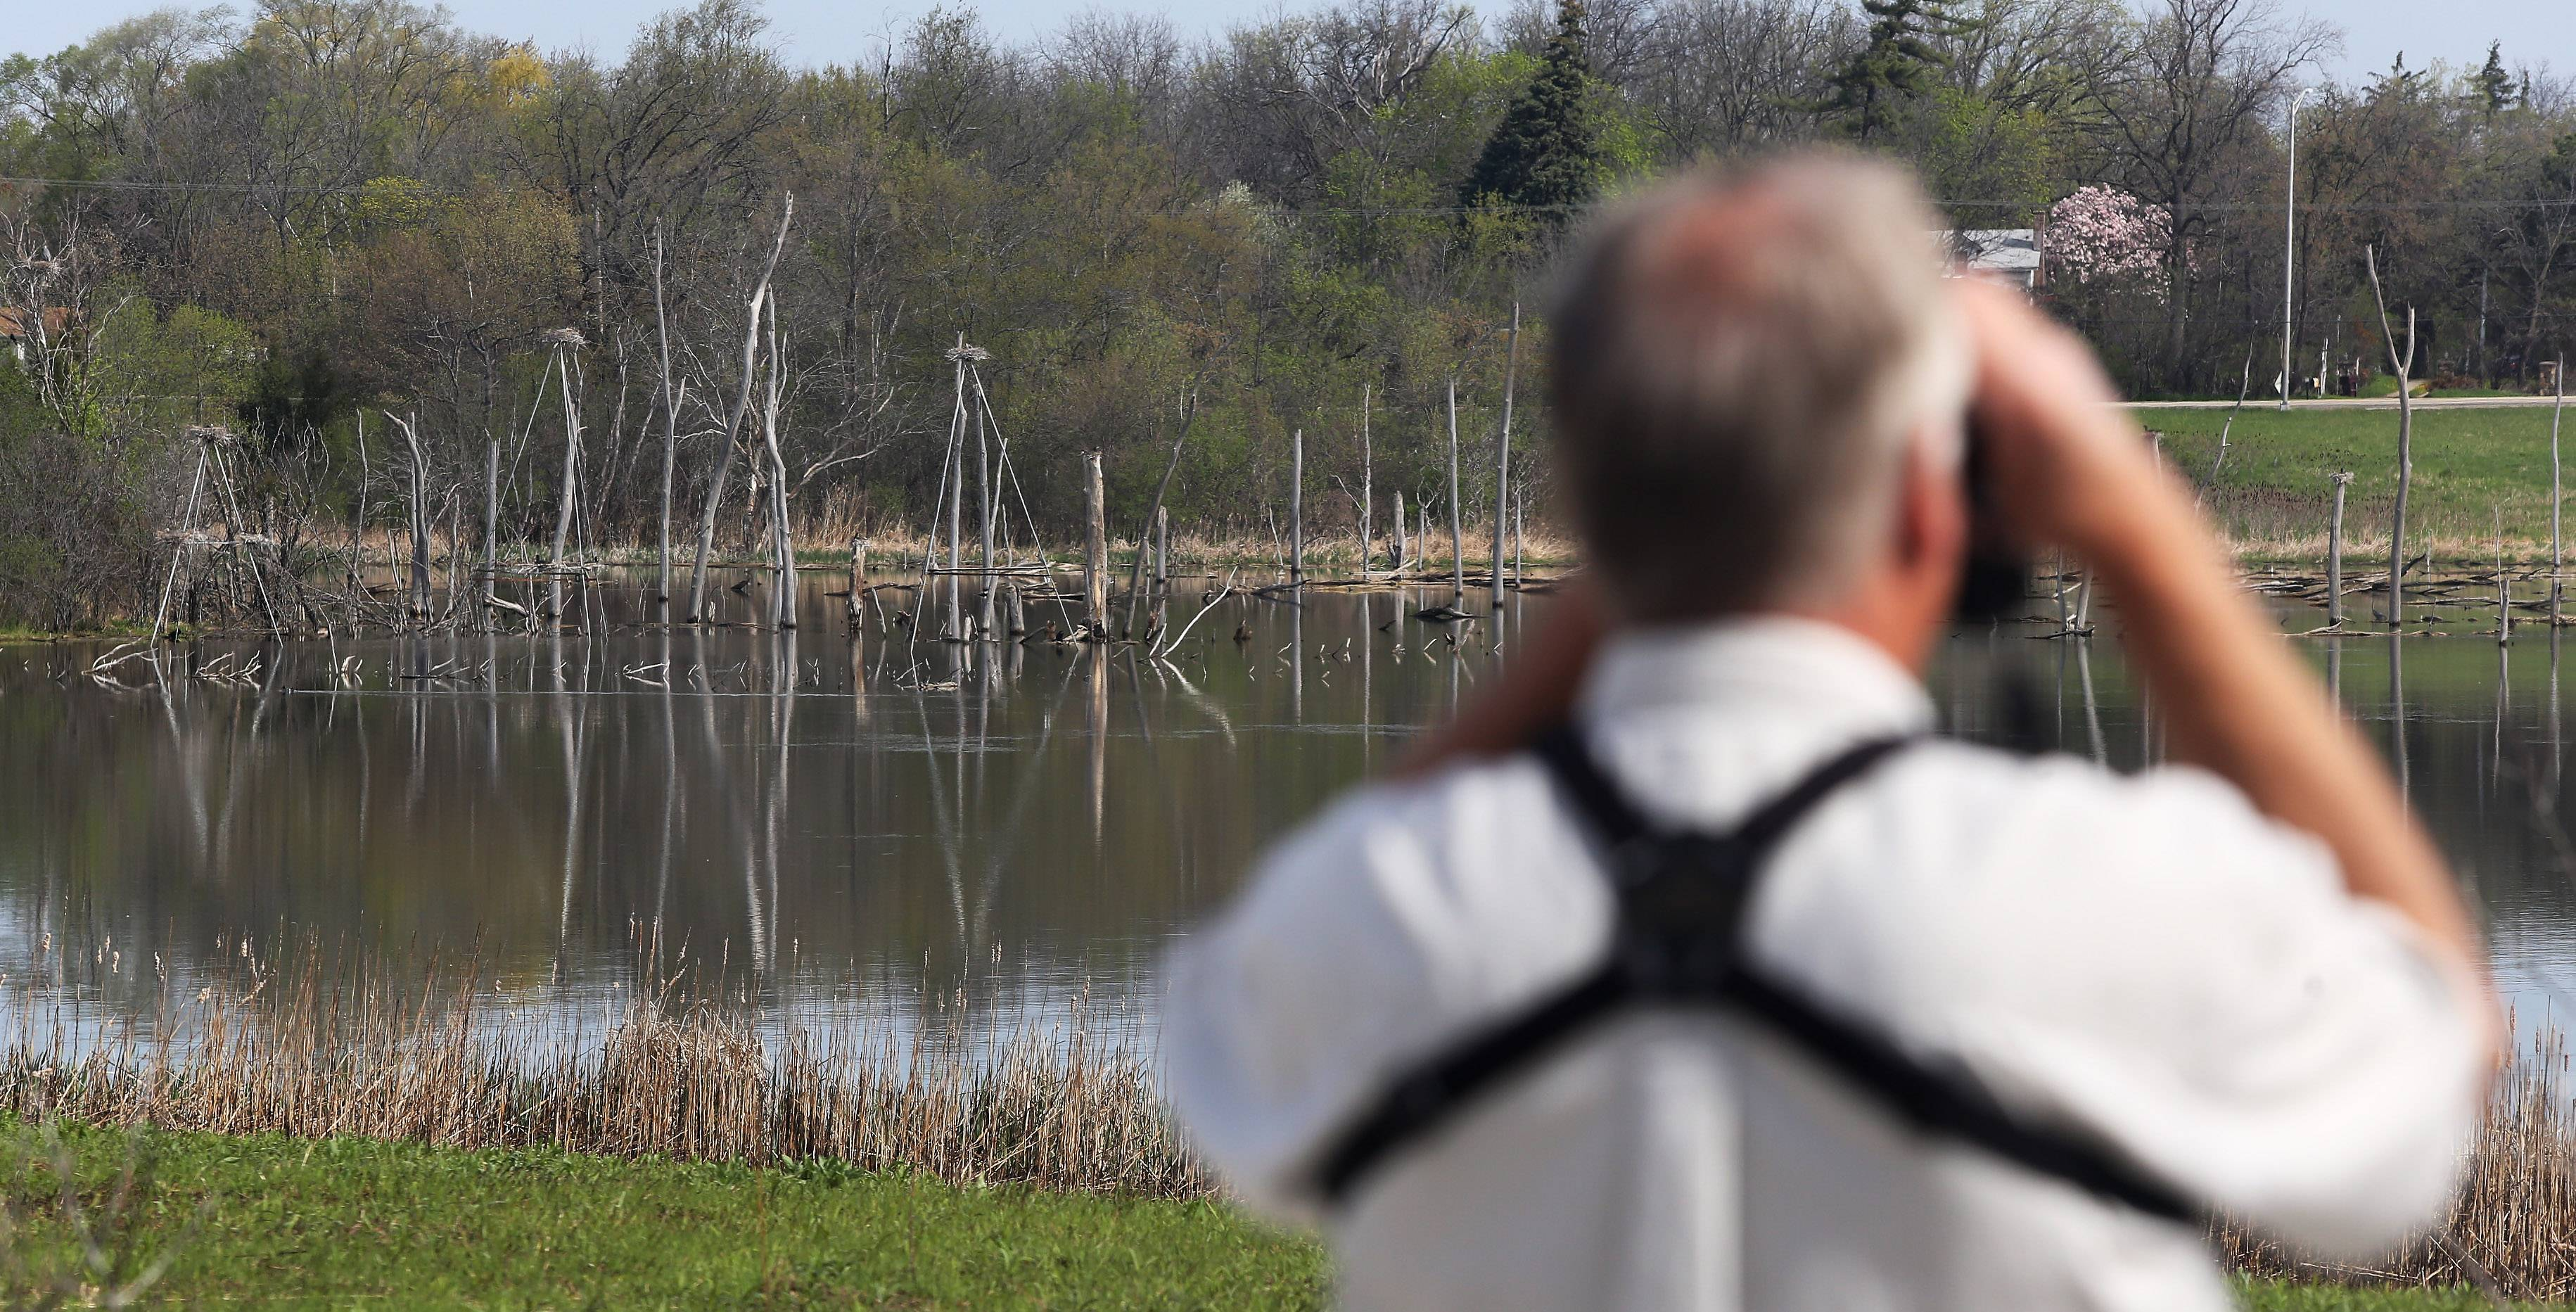 Nowak checks out the rookery as part of his job at the Almond Marsh Rookery near Wildwood in the Lake County Forest Preserve District.